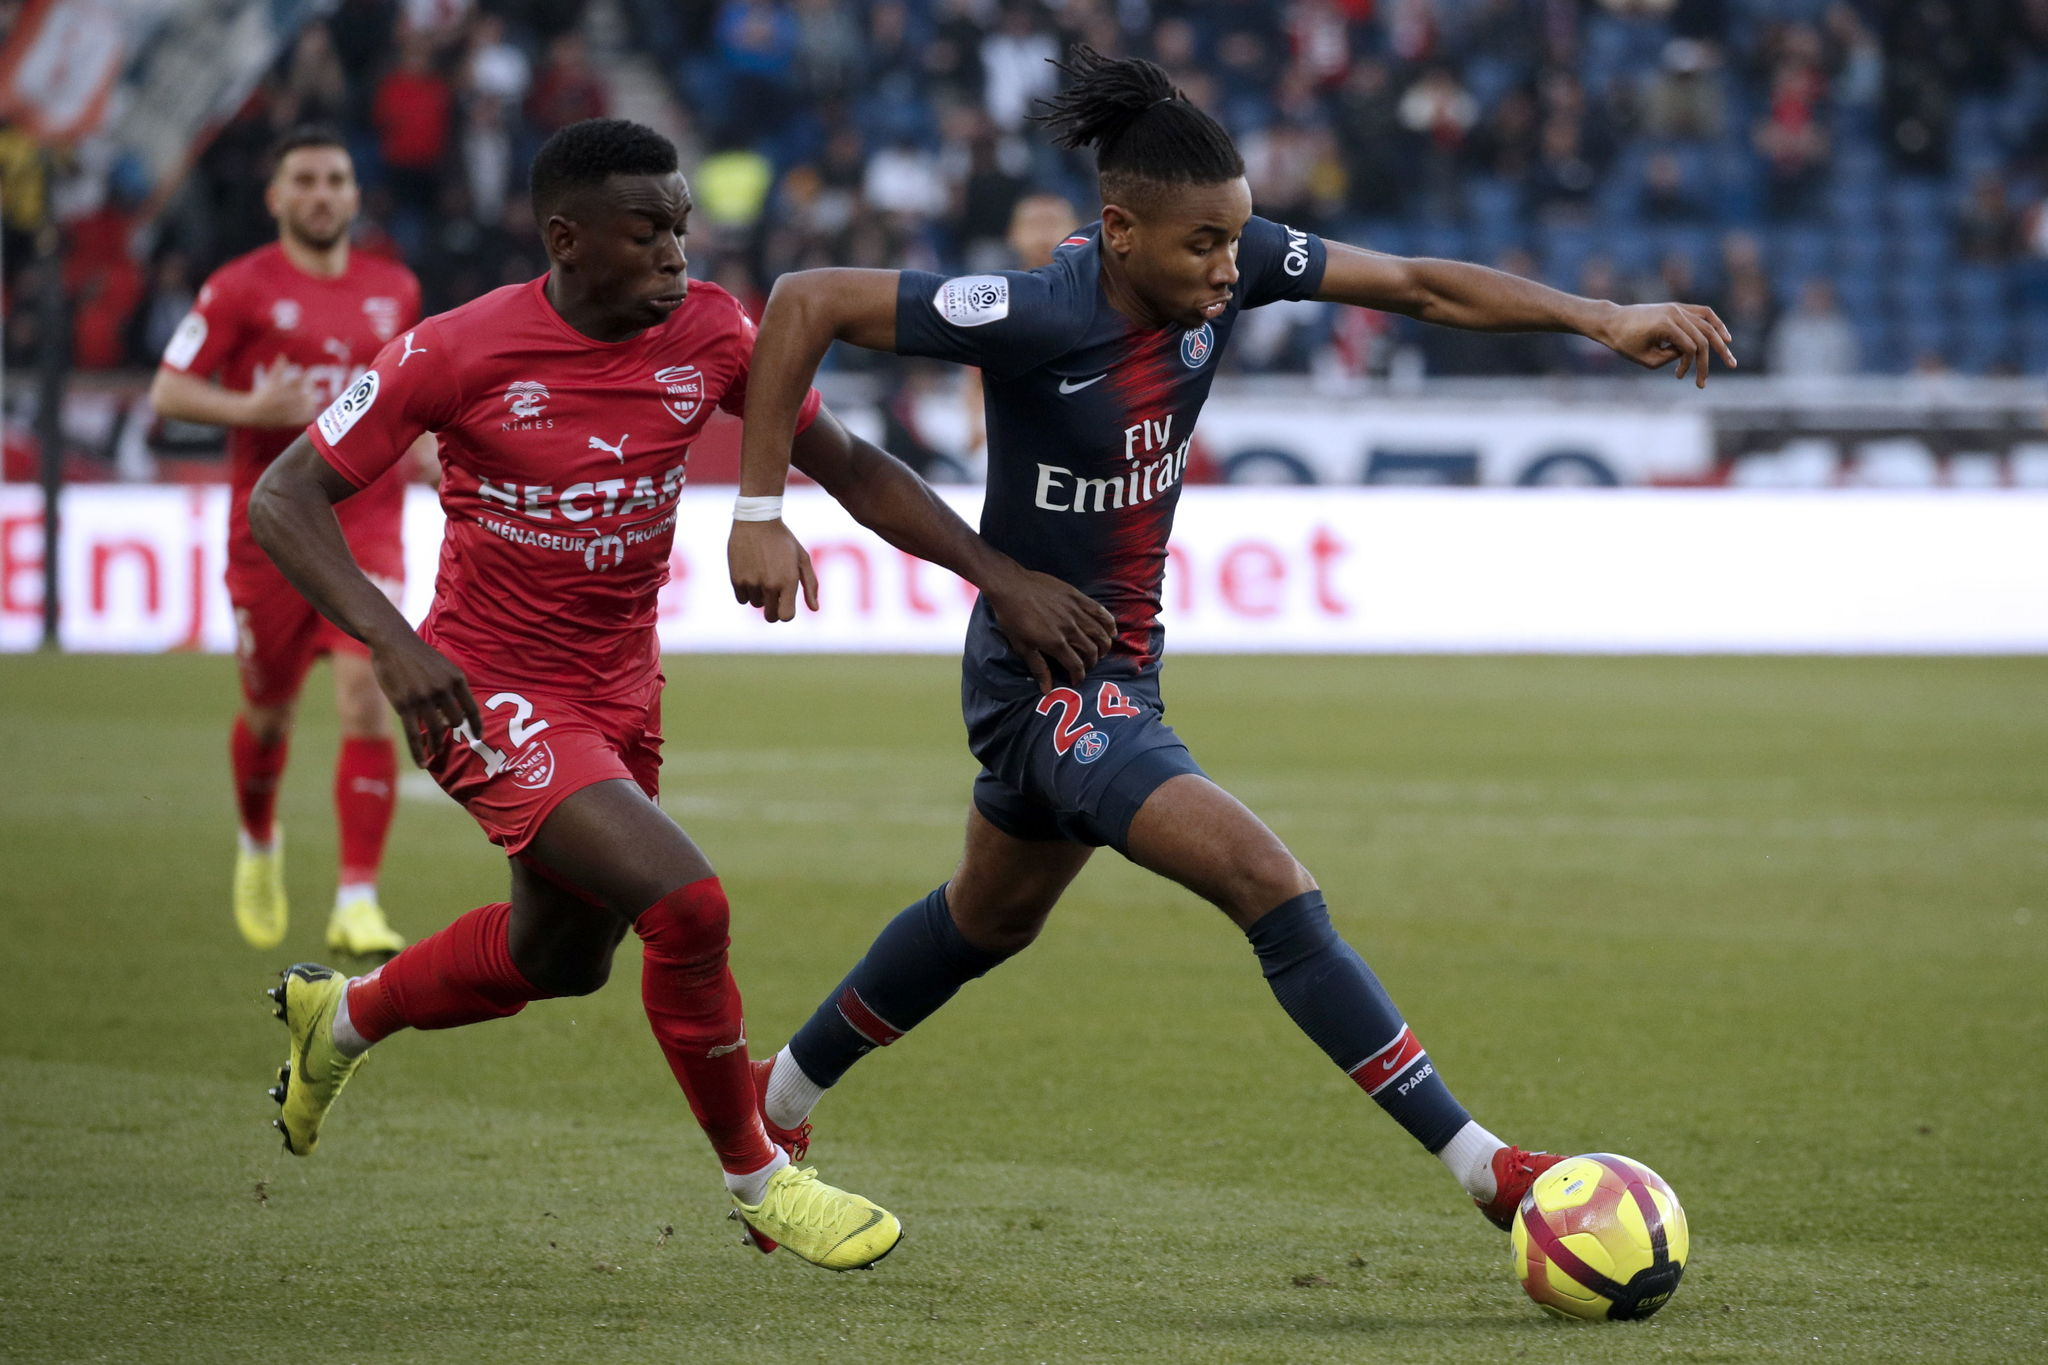 Paris (France), 23/02/2019.- Paris Saint Germains Christopher <HIT>Nkunku</HIT> (R) and Faitout Maouassa (L) of Nimes in action during the French Ligue 1 soccer match between PSG and Nimes at the Parc des Princes stadium in Paris, France, 23 February 2019. (Francia) EFE/EPA/YOAN VALAT